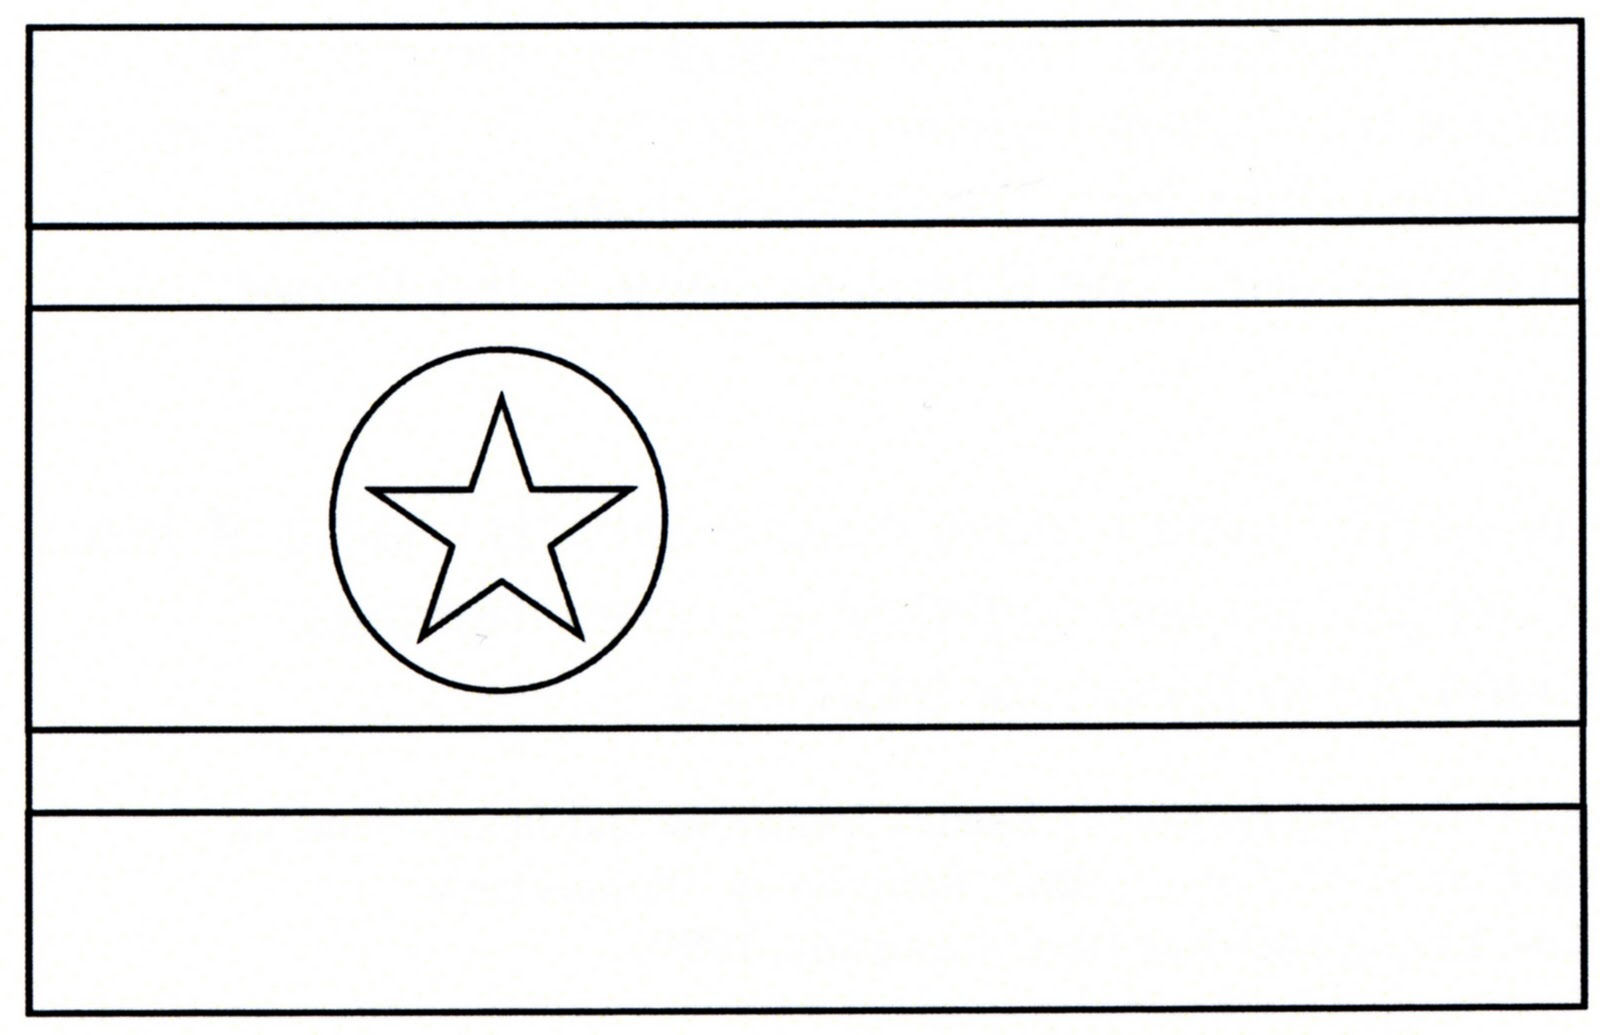 england flag coloring page trendy usa blue star service flag